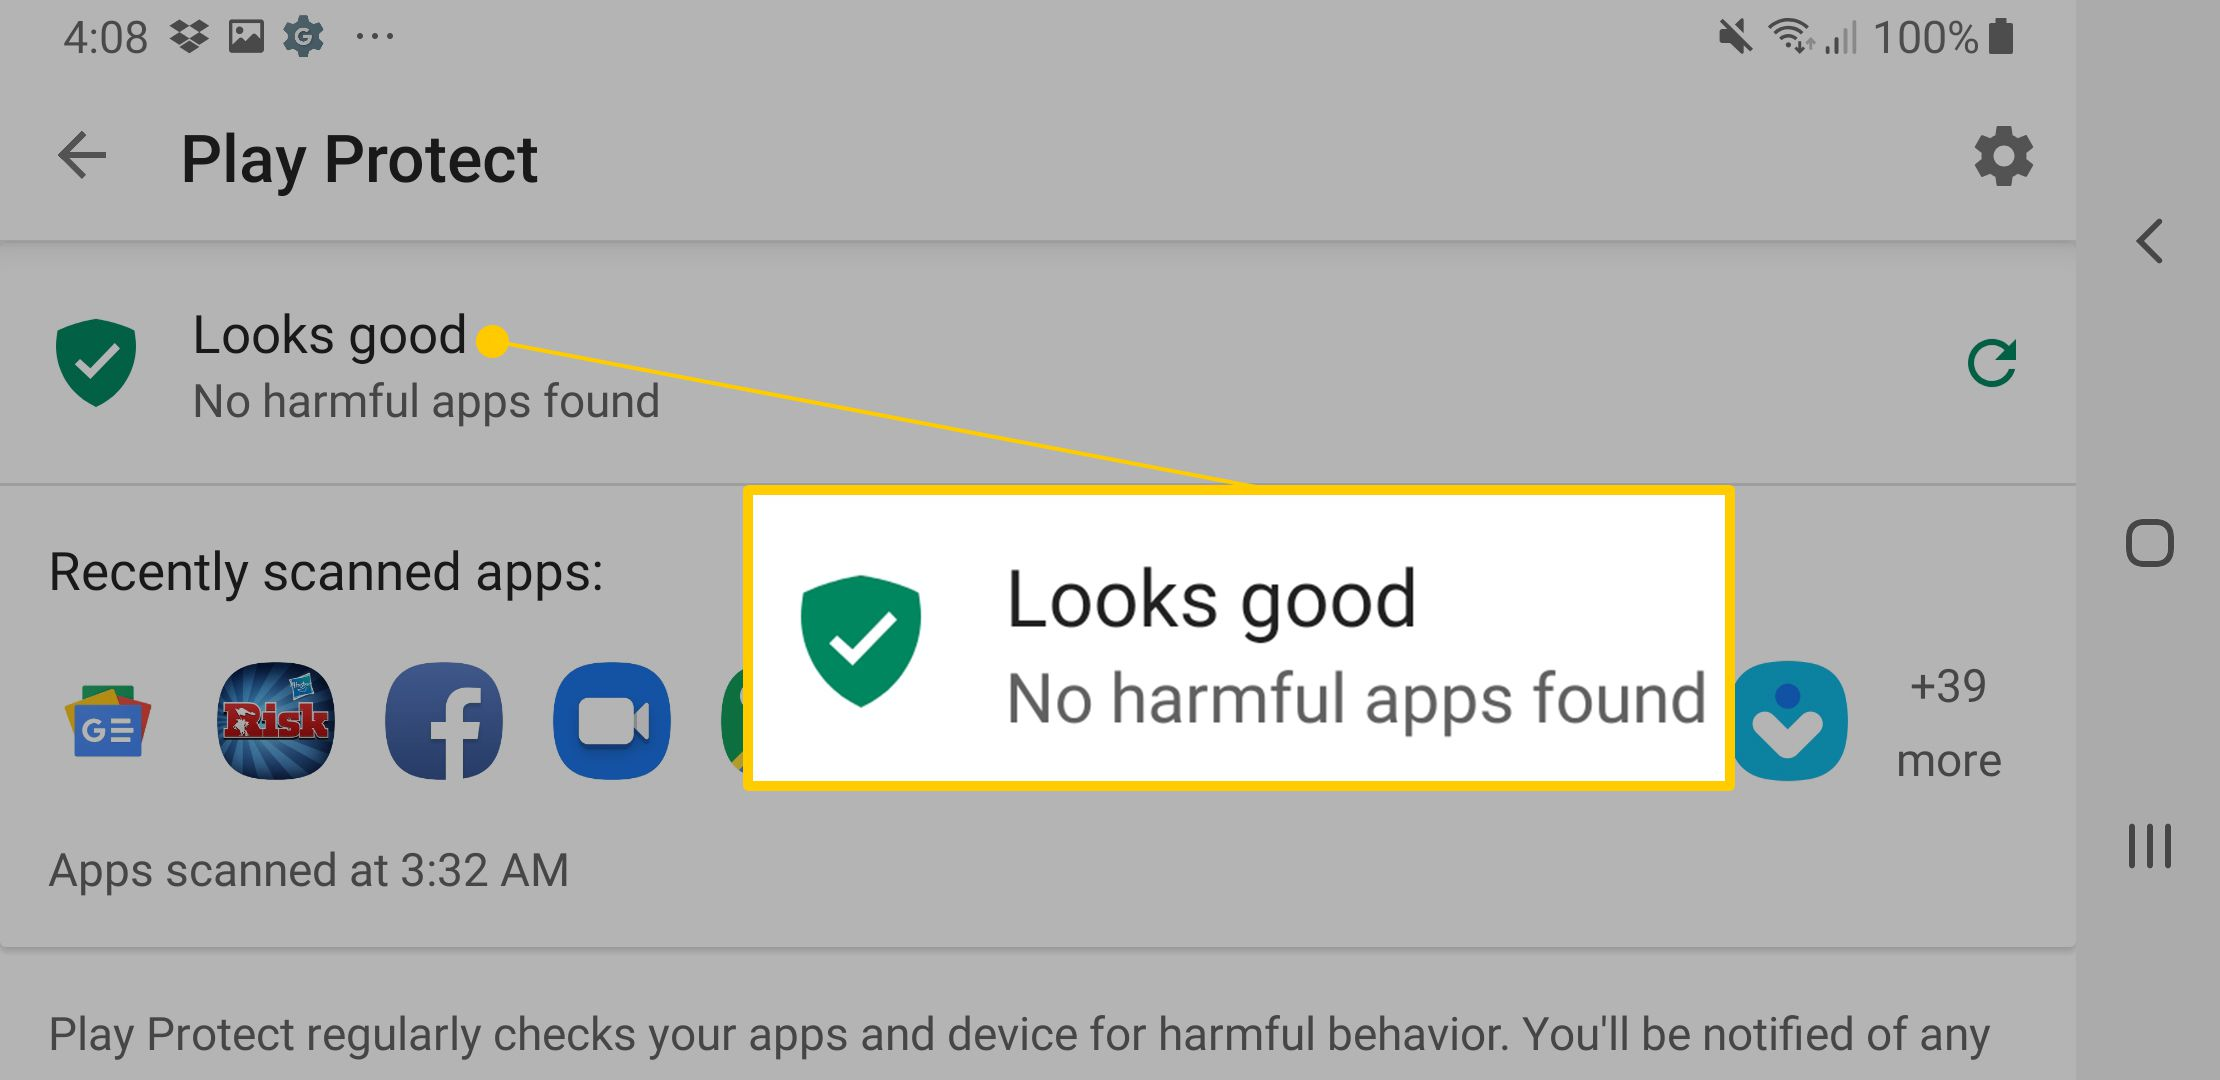 How to Get Rid of an Android Virus From Your Phone